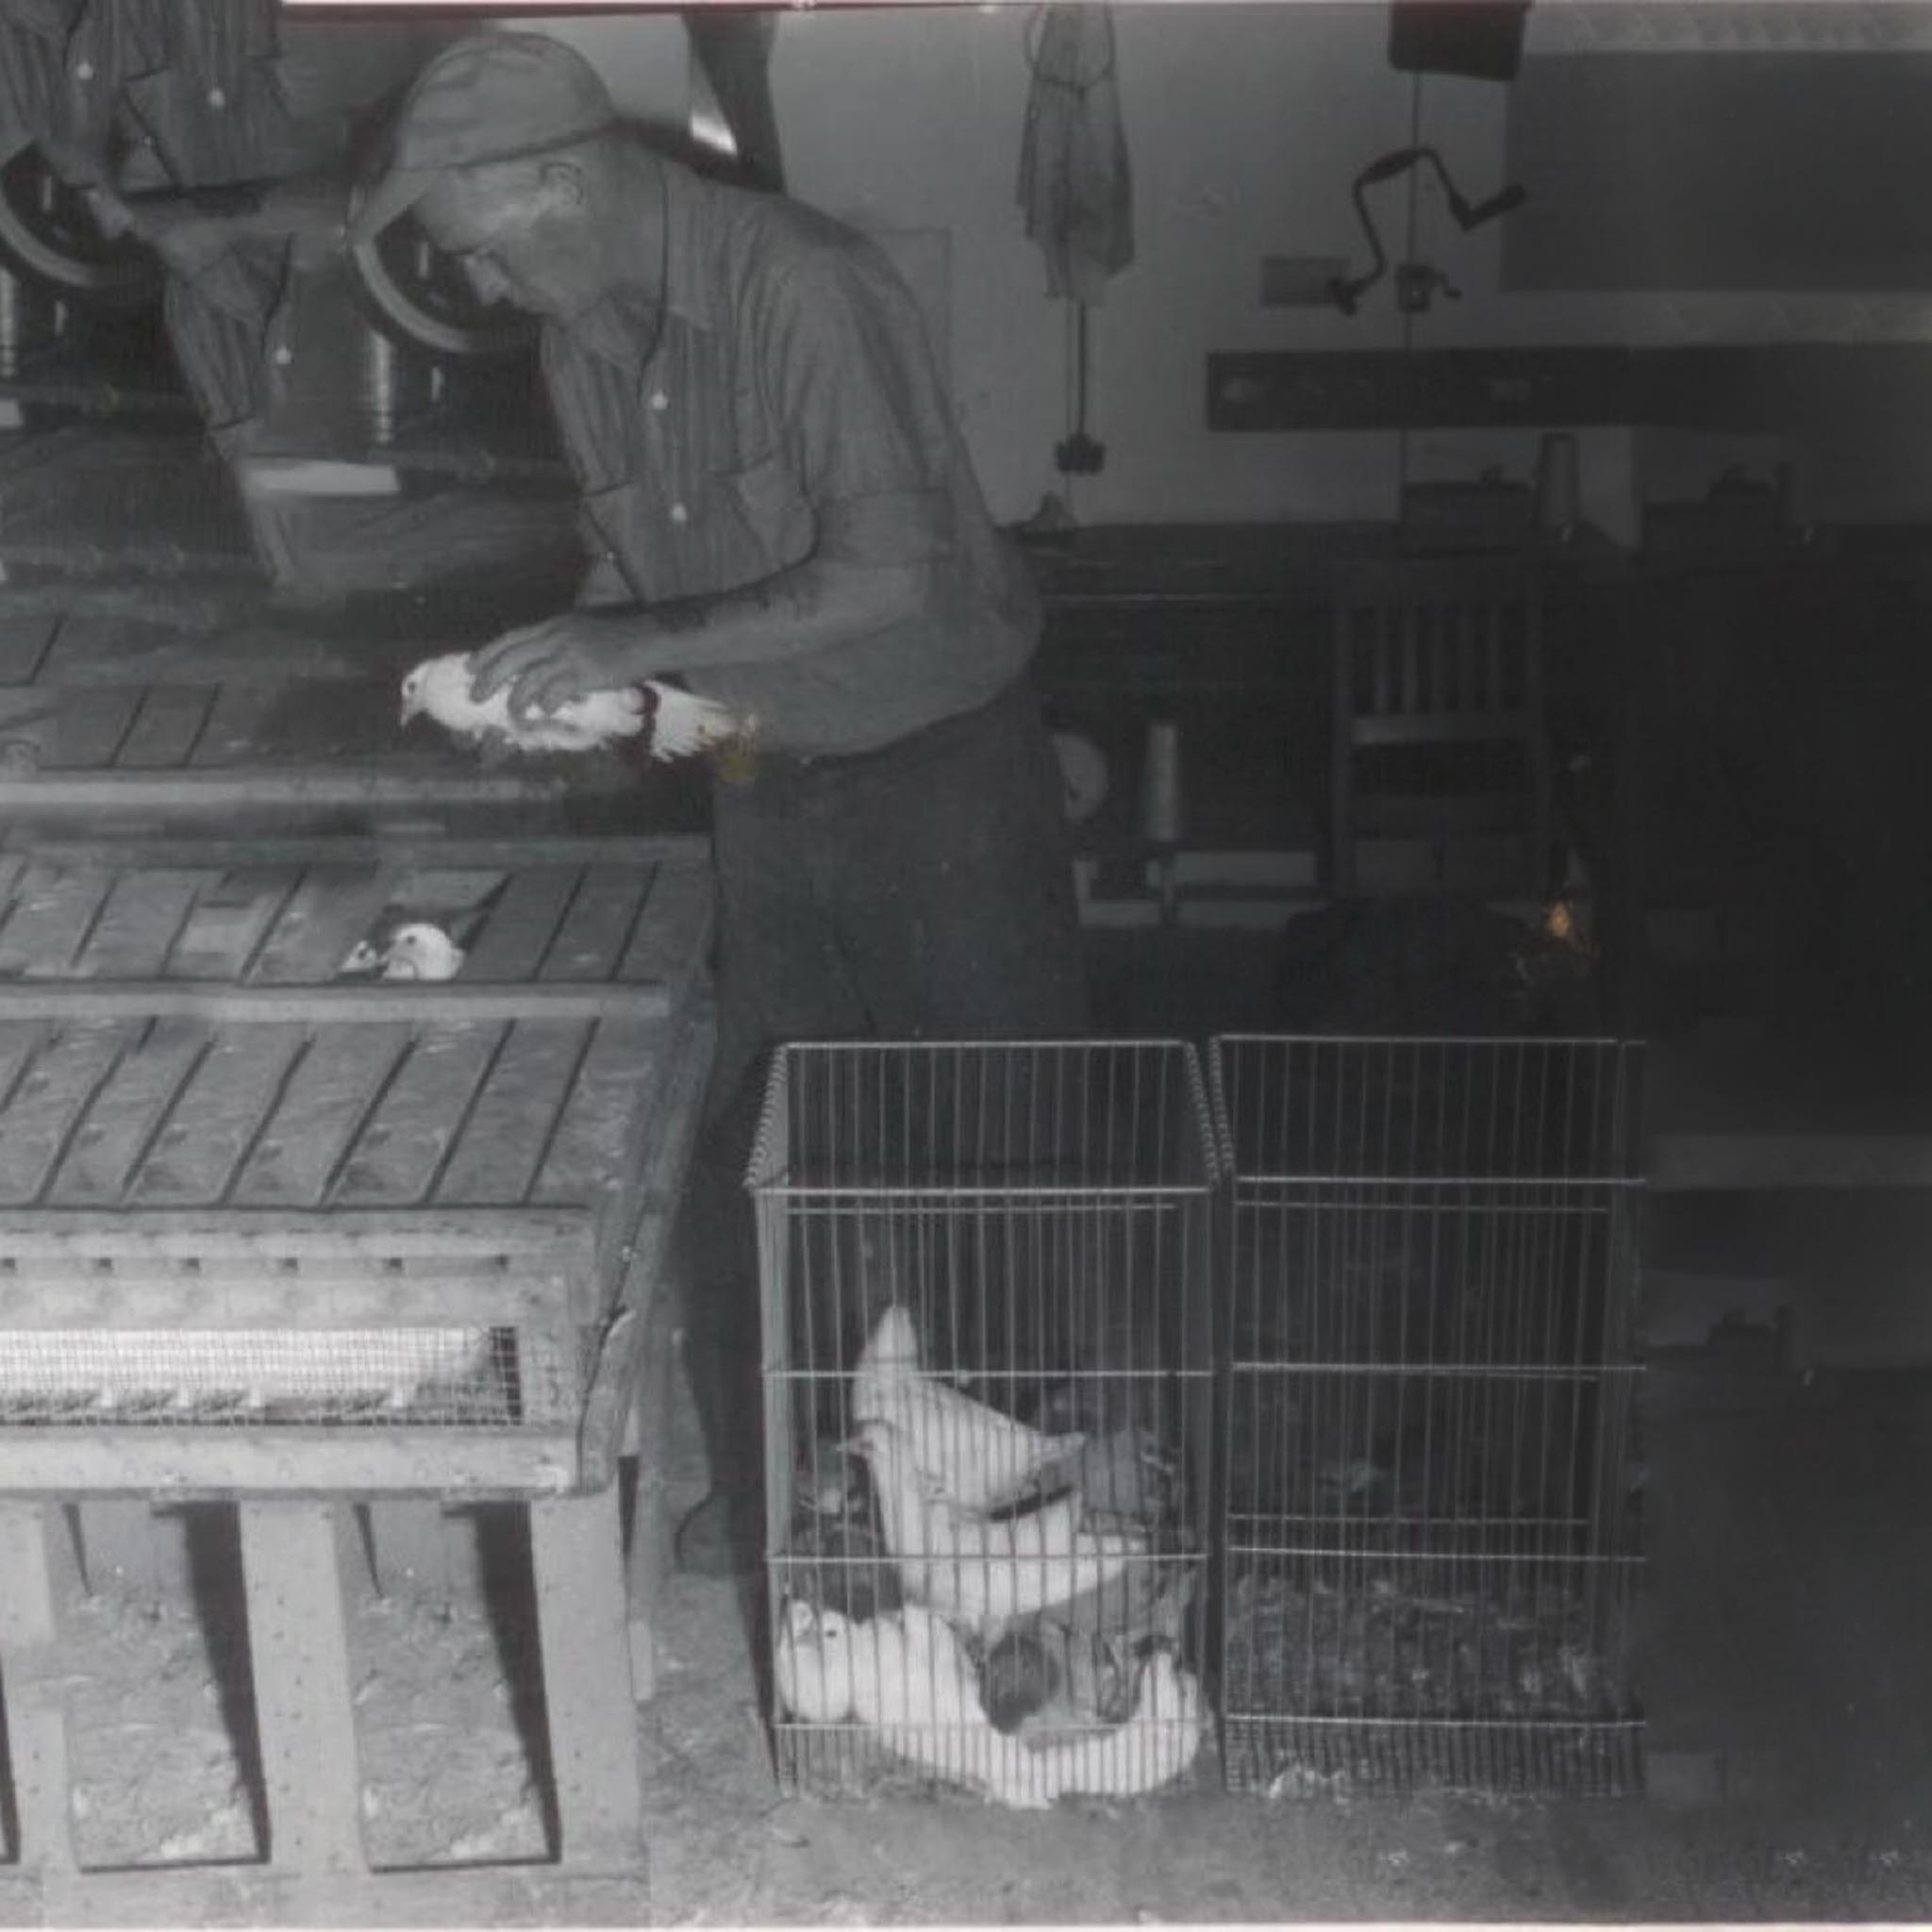 1960. Bird receiving at SPOC's processing plant.